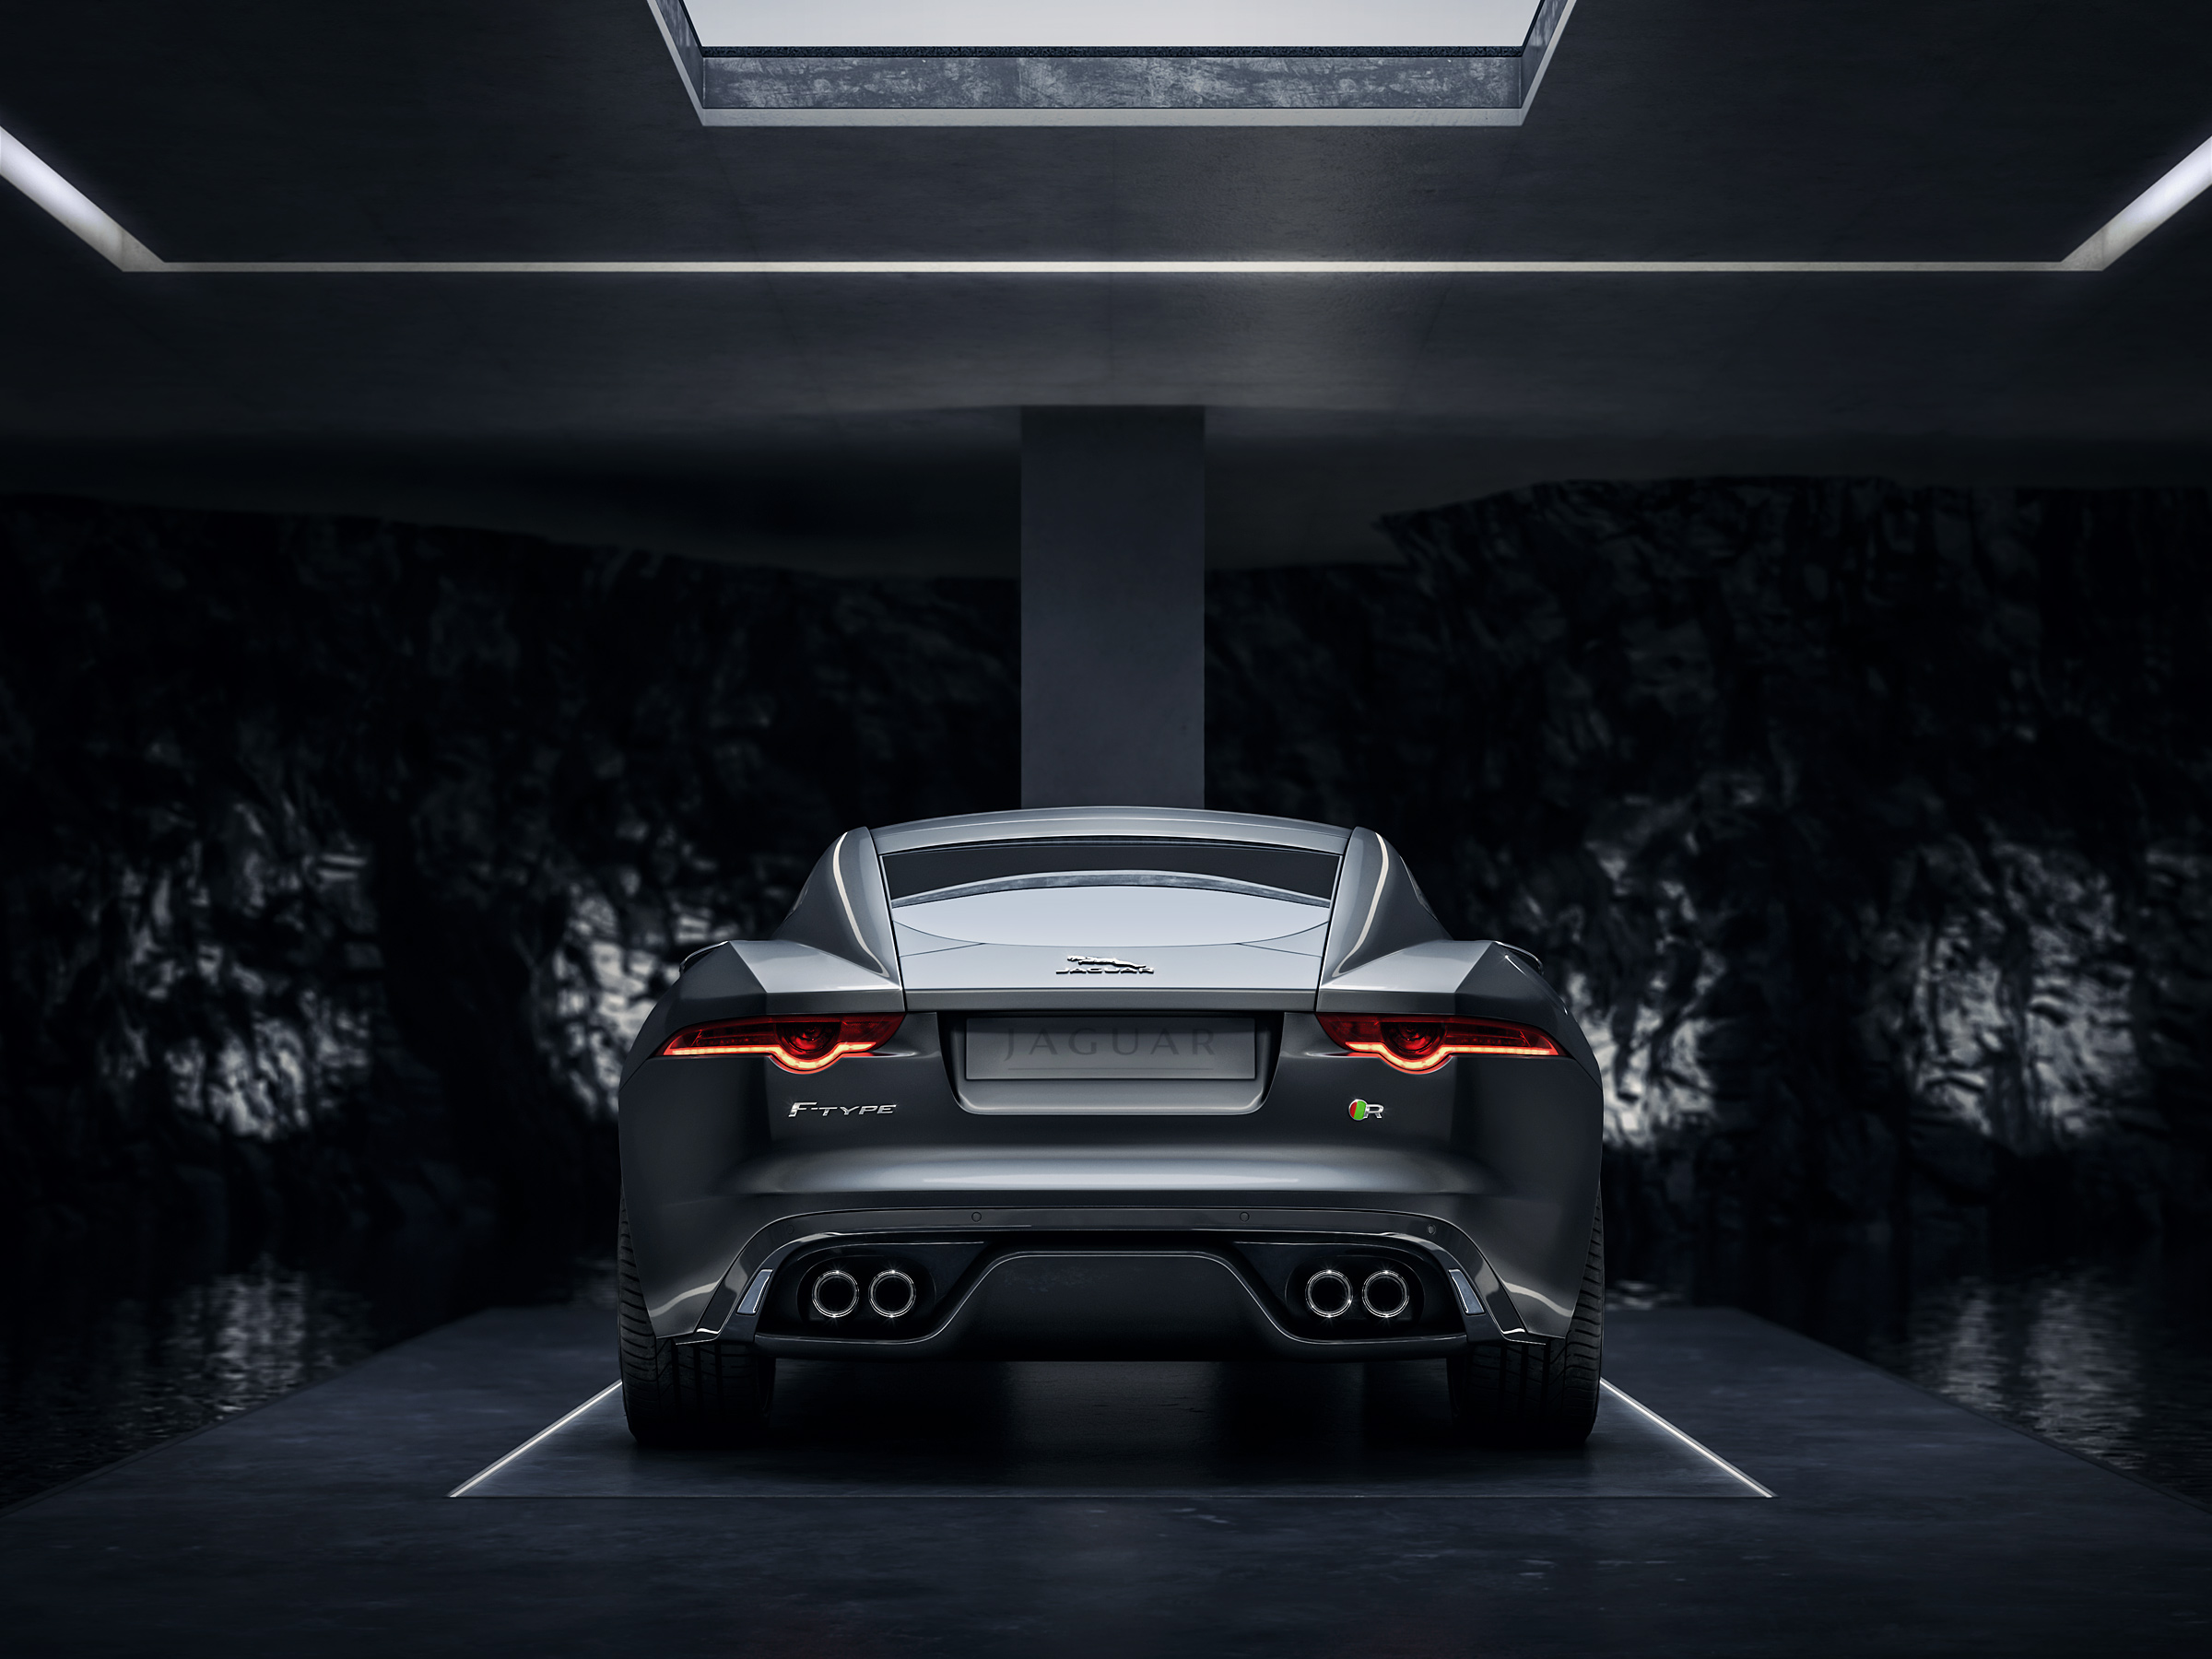 jaguar_ftype_f_type_tank_cgi_retouch_london_post_production_underground_lair_garage_rear